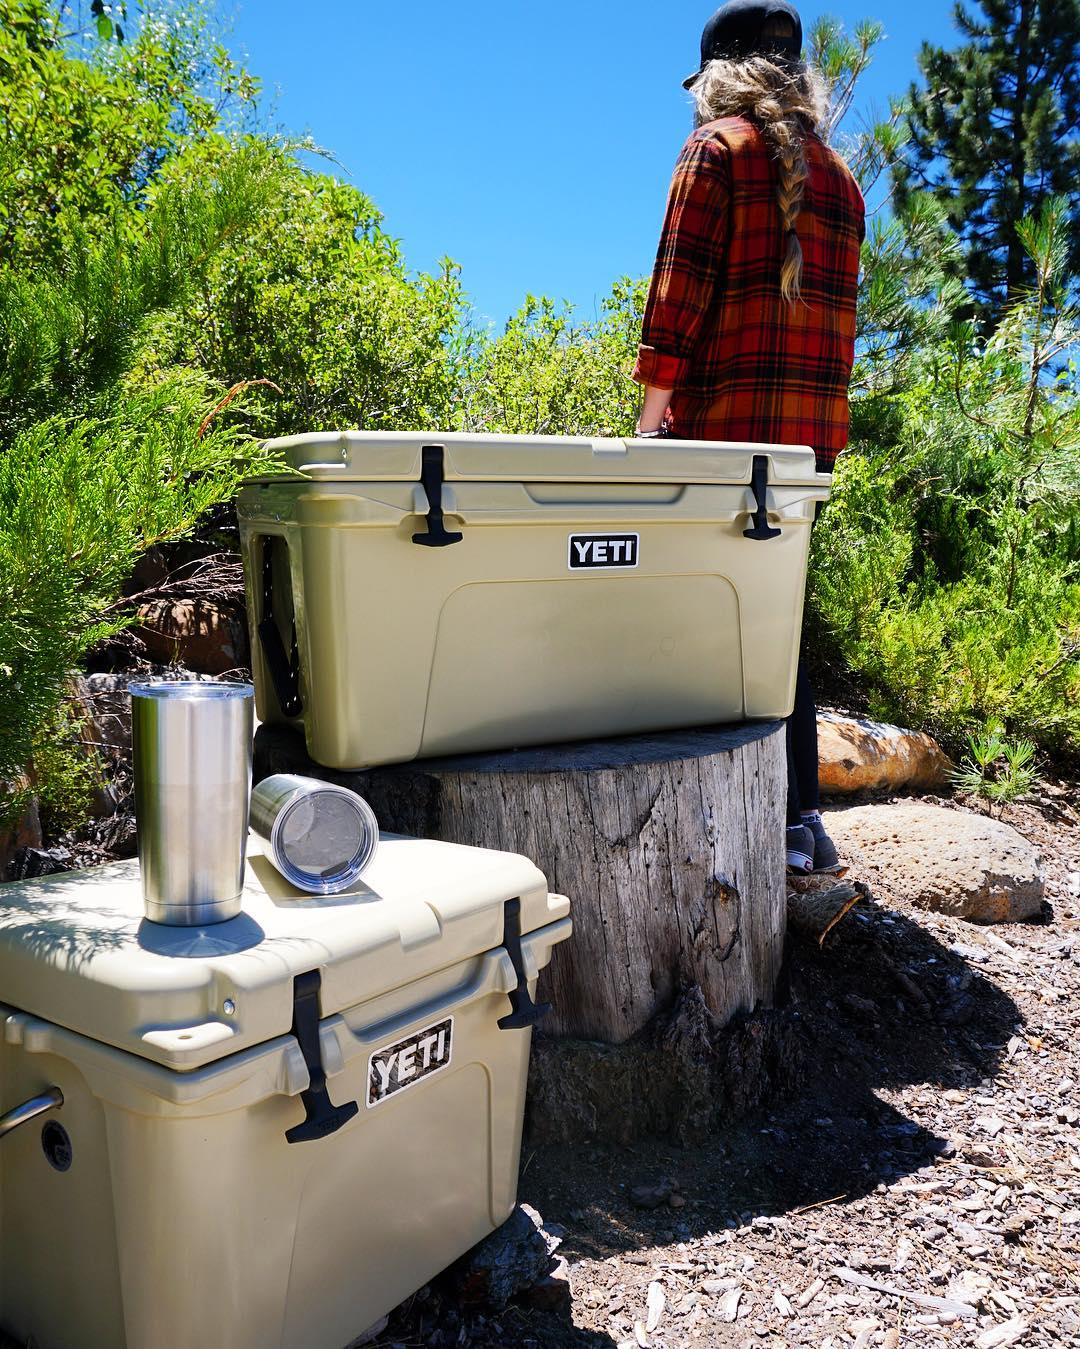 Wildly stronger! Keep ice longer! High Five @yeti for keeping #HighFivesAthlete's food fresh and beverages cold! #builtforthewild